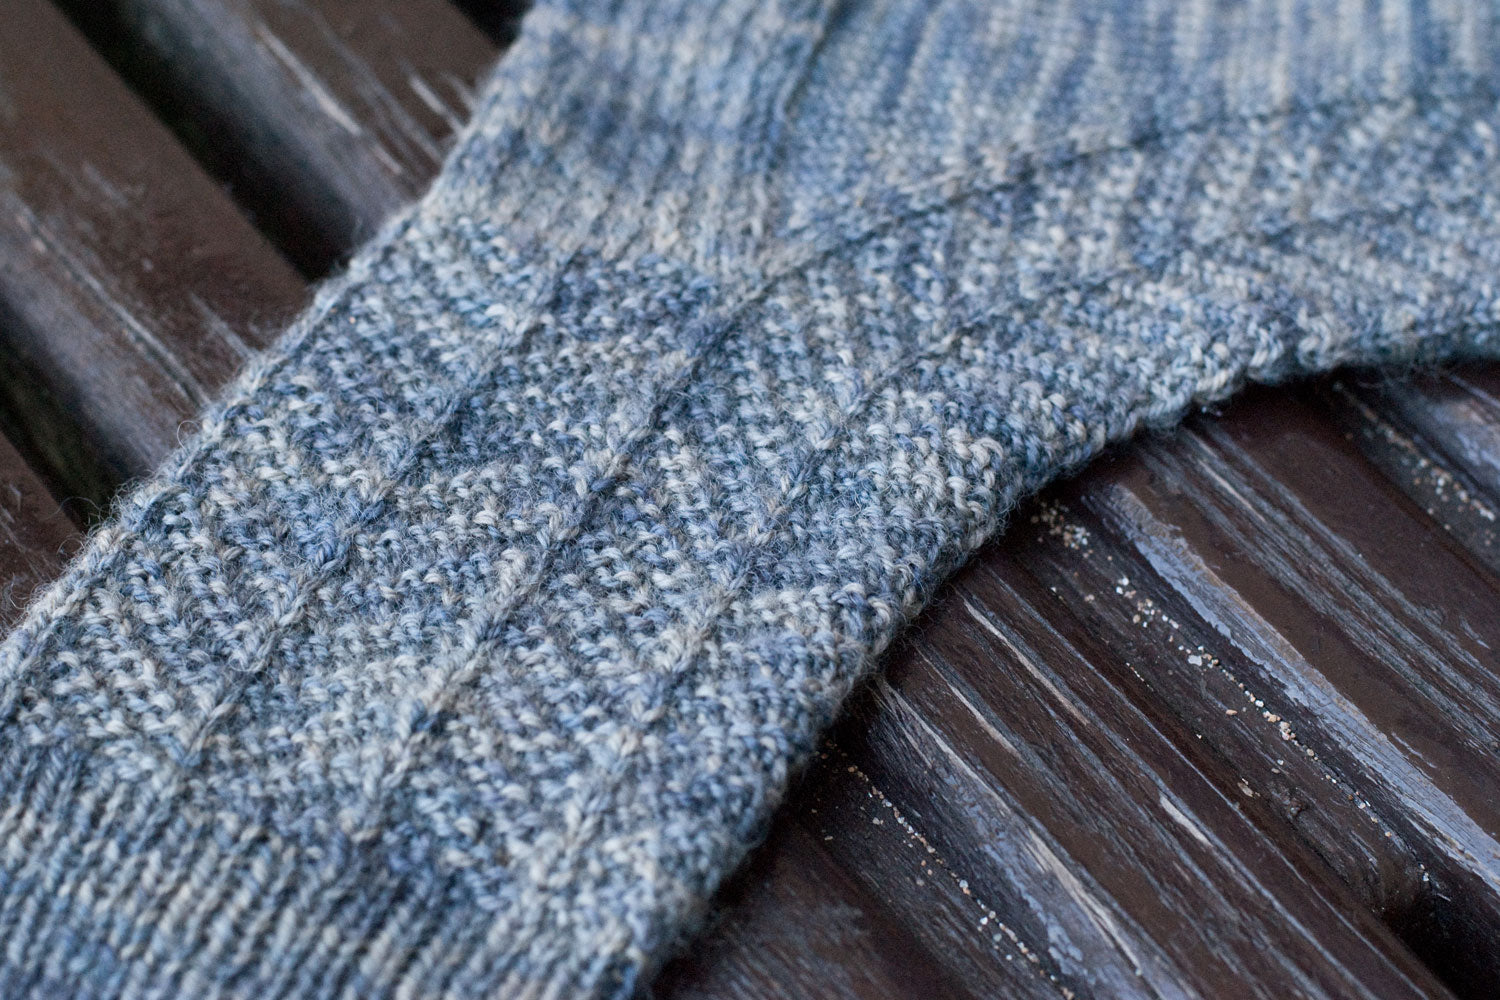 Stitch detail of Harrowsmith sock knitting pattern